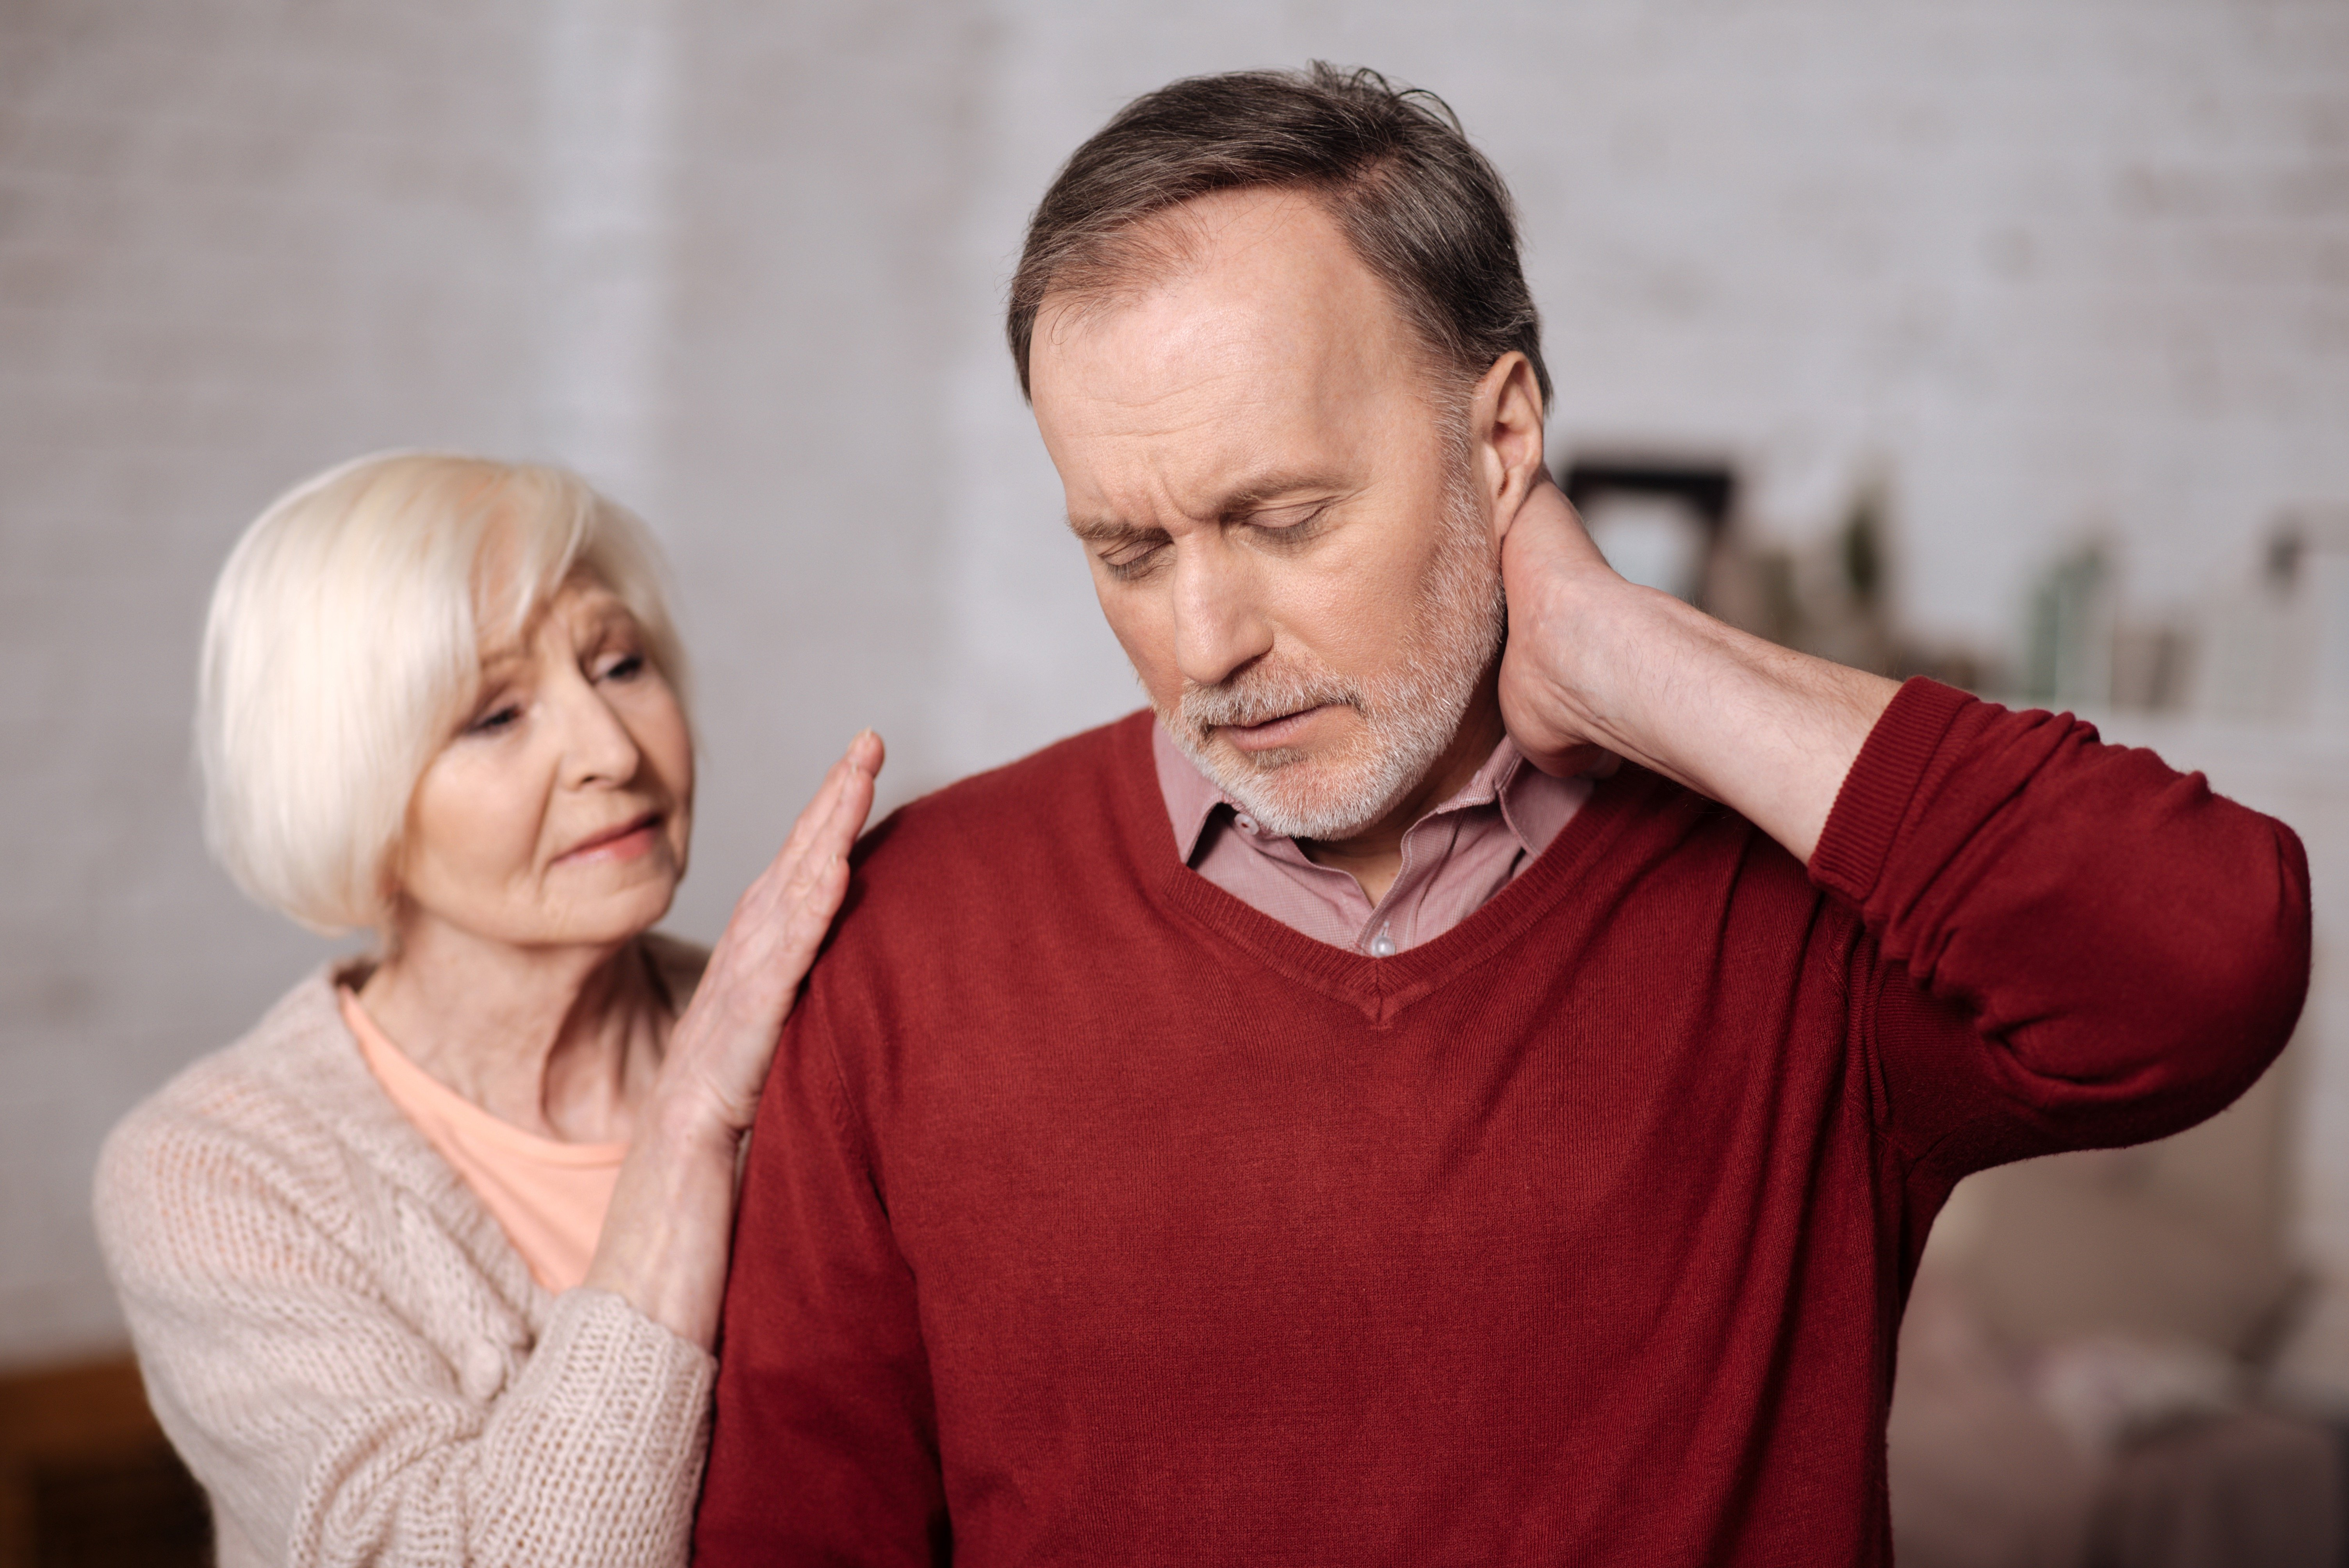 What are the long-term affects of whiplash after a car accident